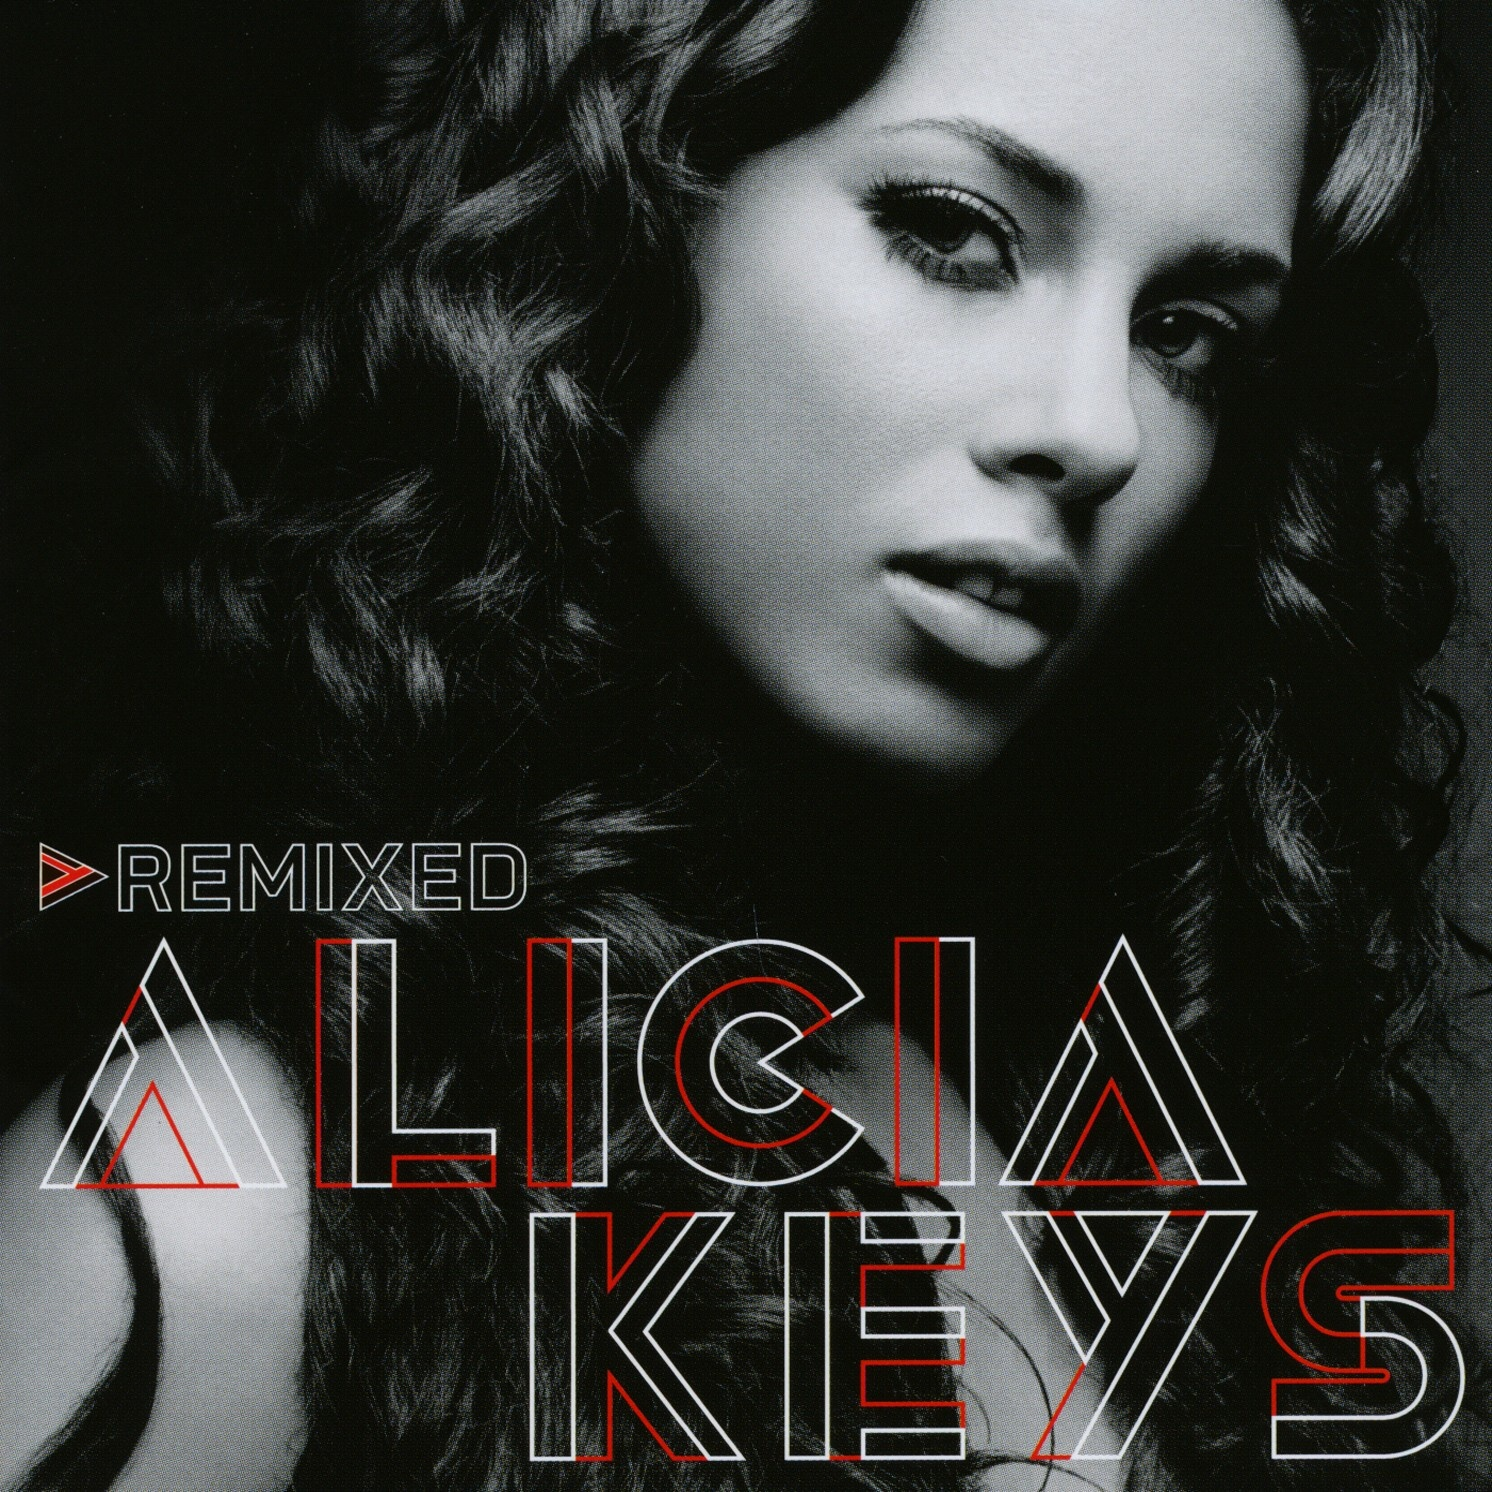 Byron's Music: Alicia Keys - Remixed (2008) - [R&B/Soul] Alicia Keys Songs